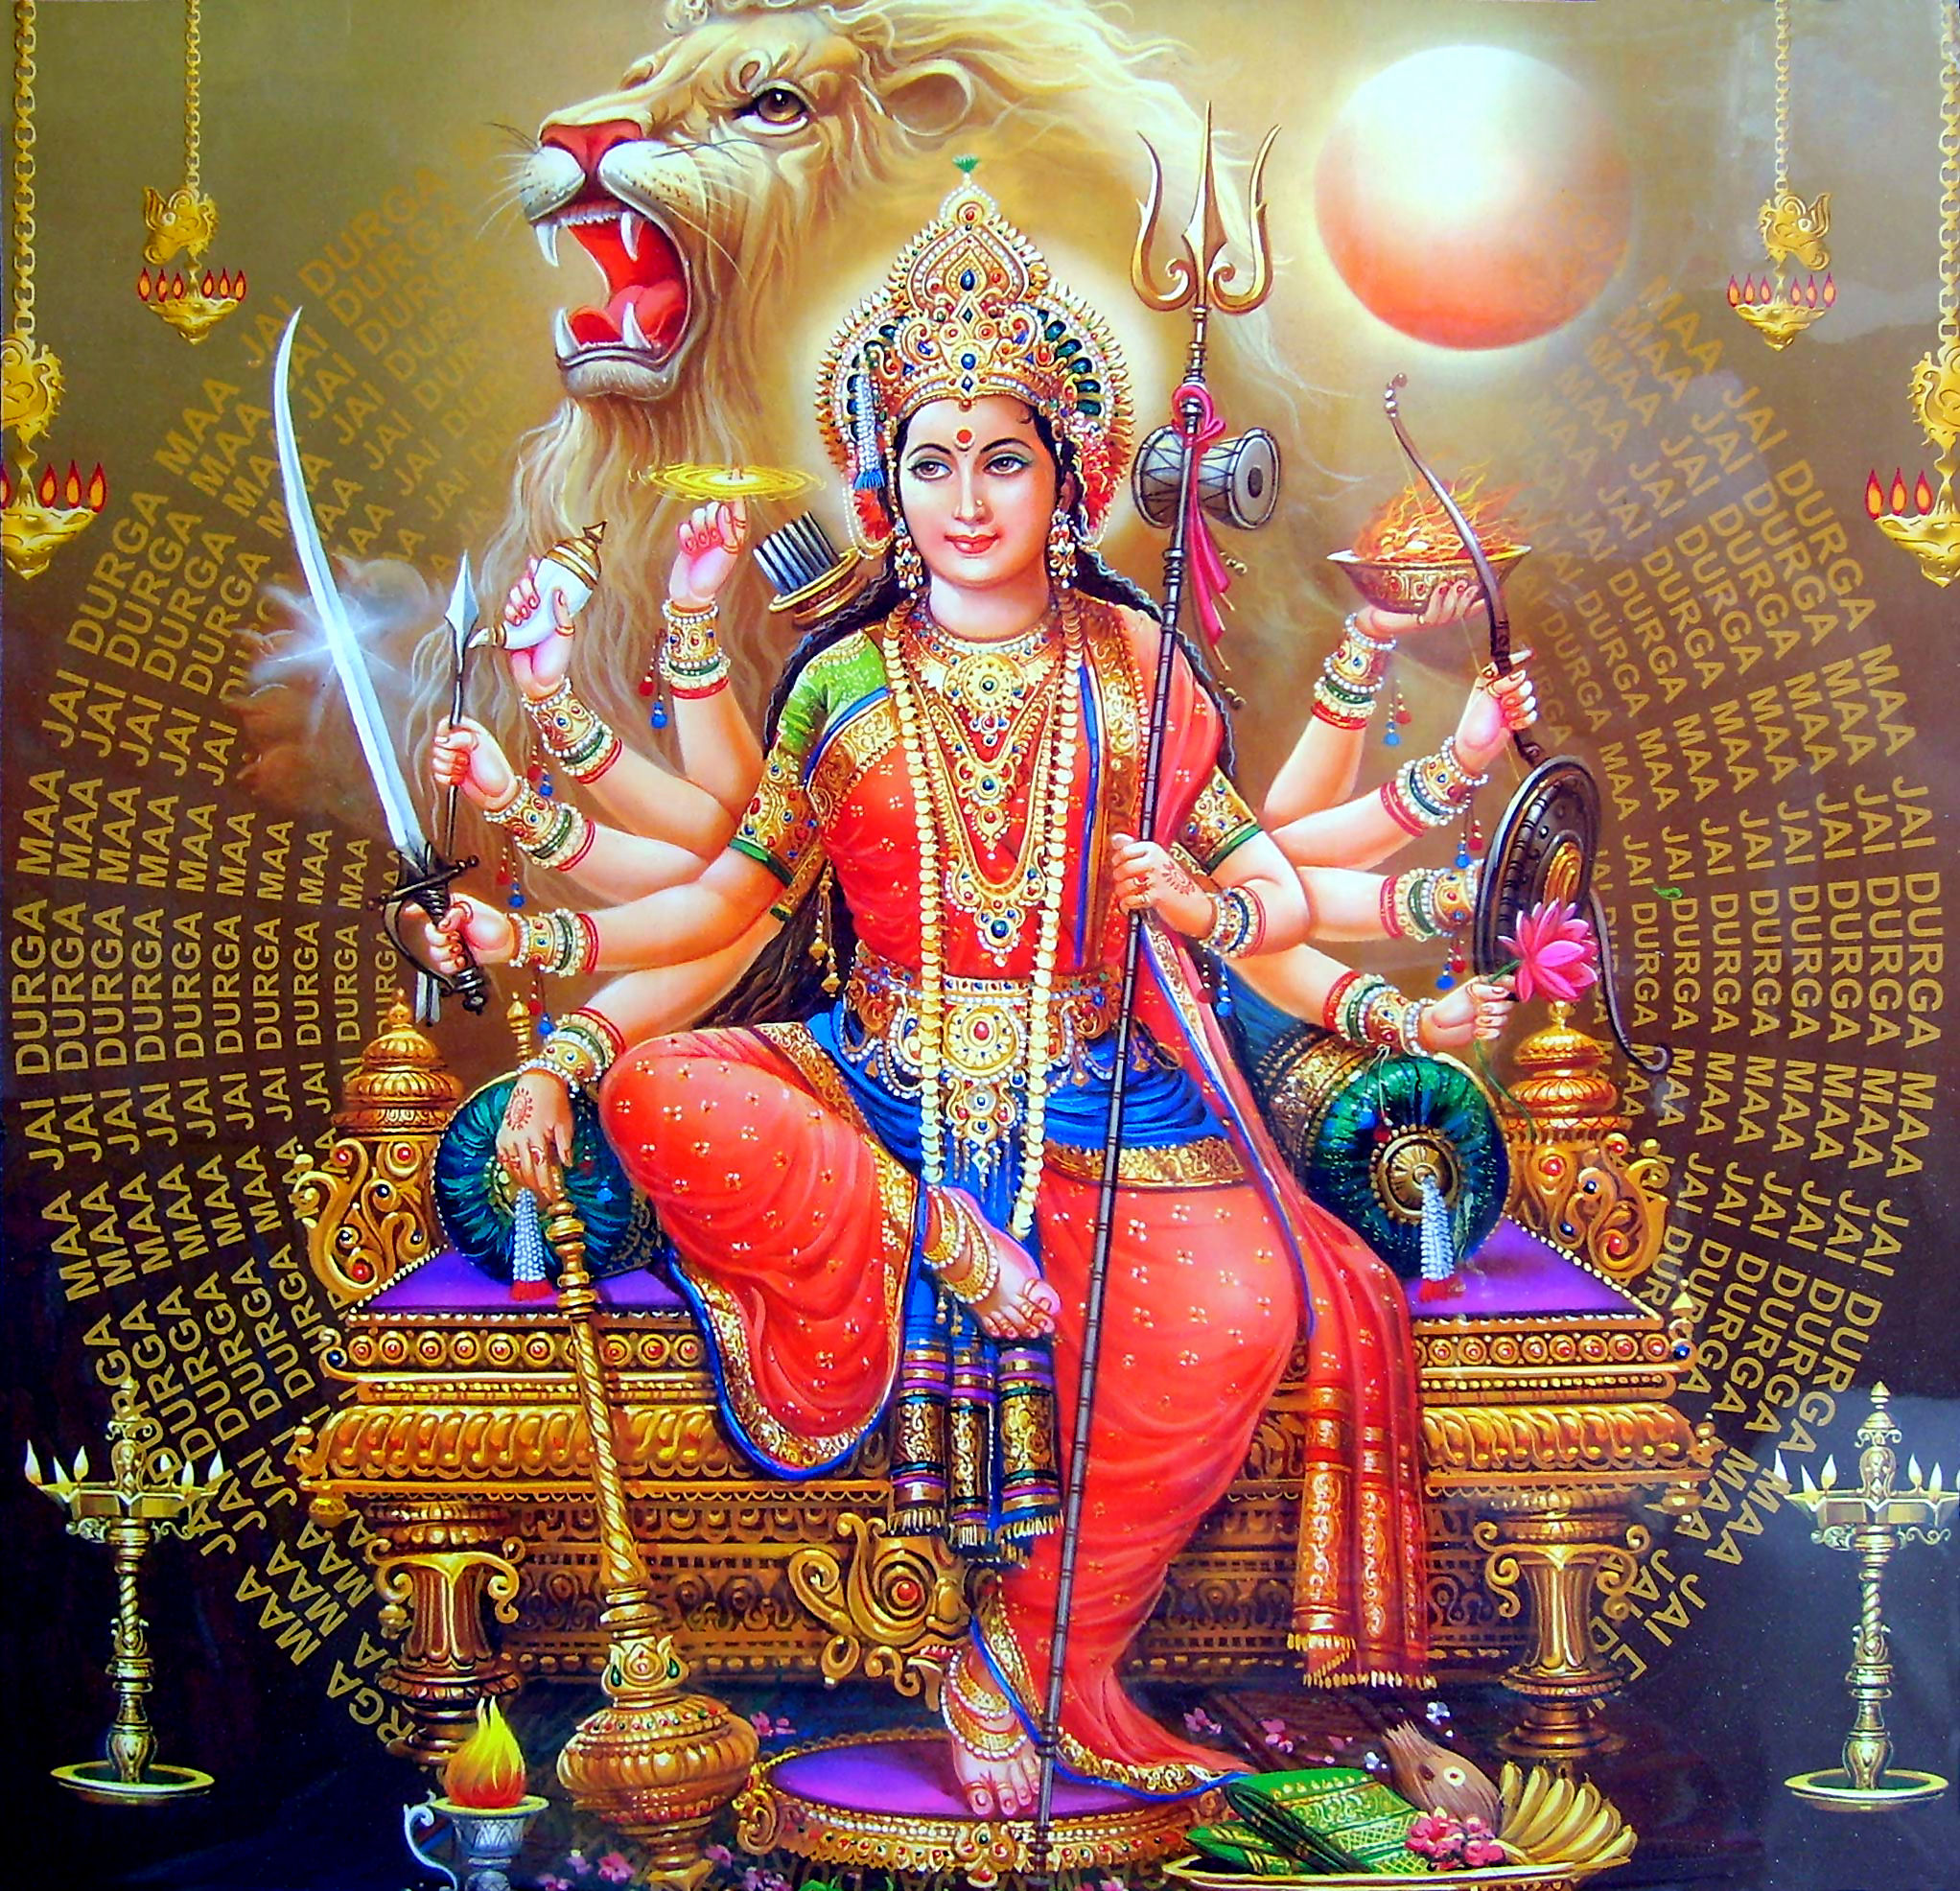 9 aspects of Devi worshiped for 9 days